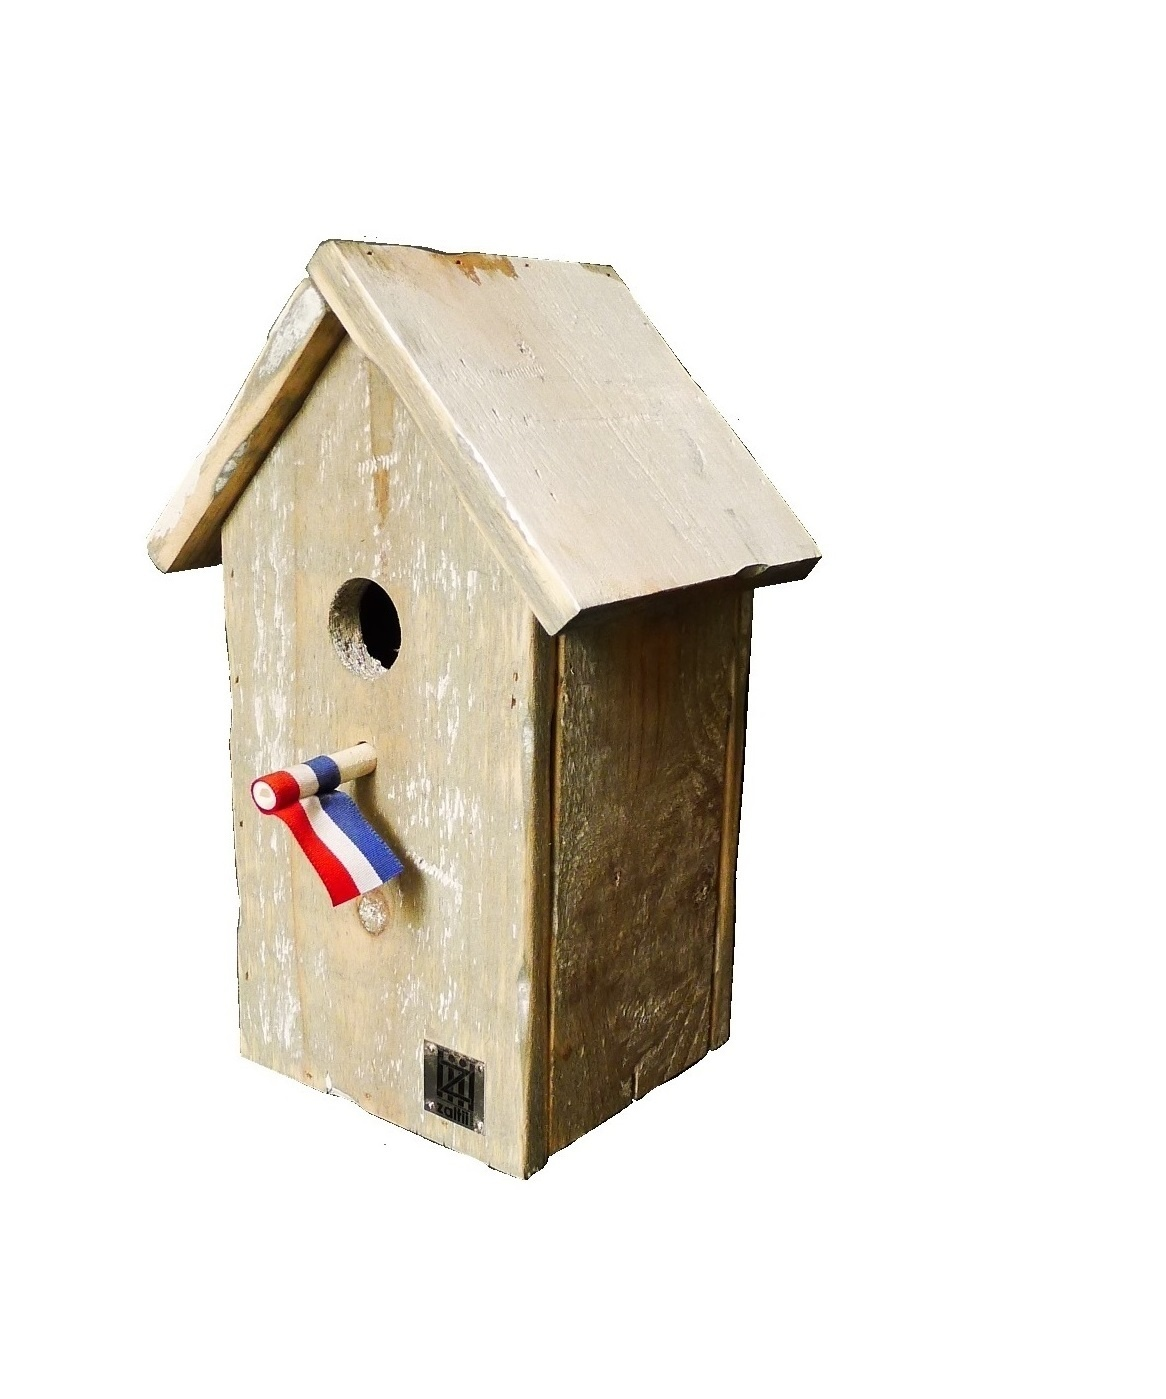 birdhouse old dutch stB pointed roof-10